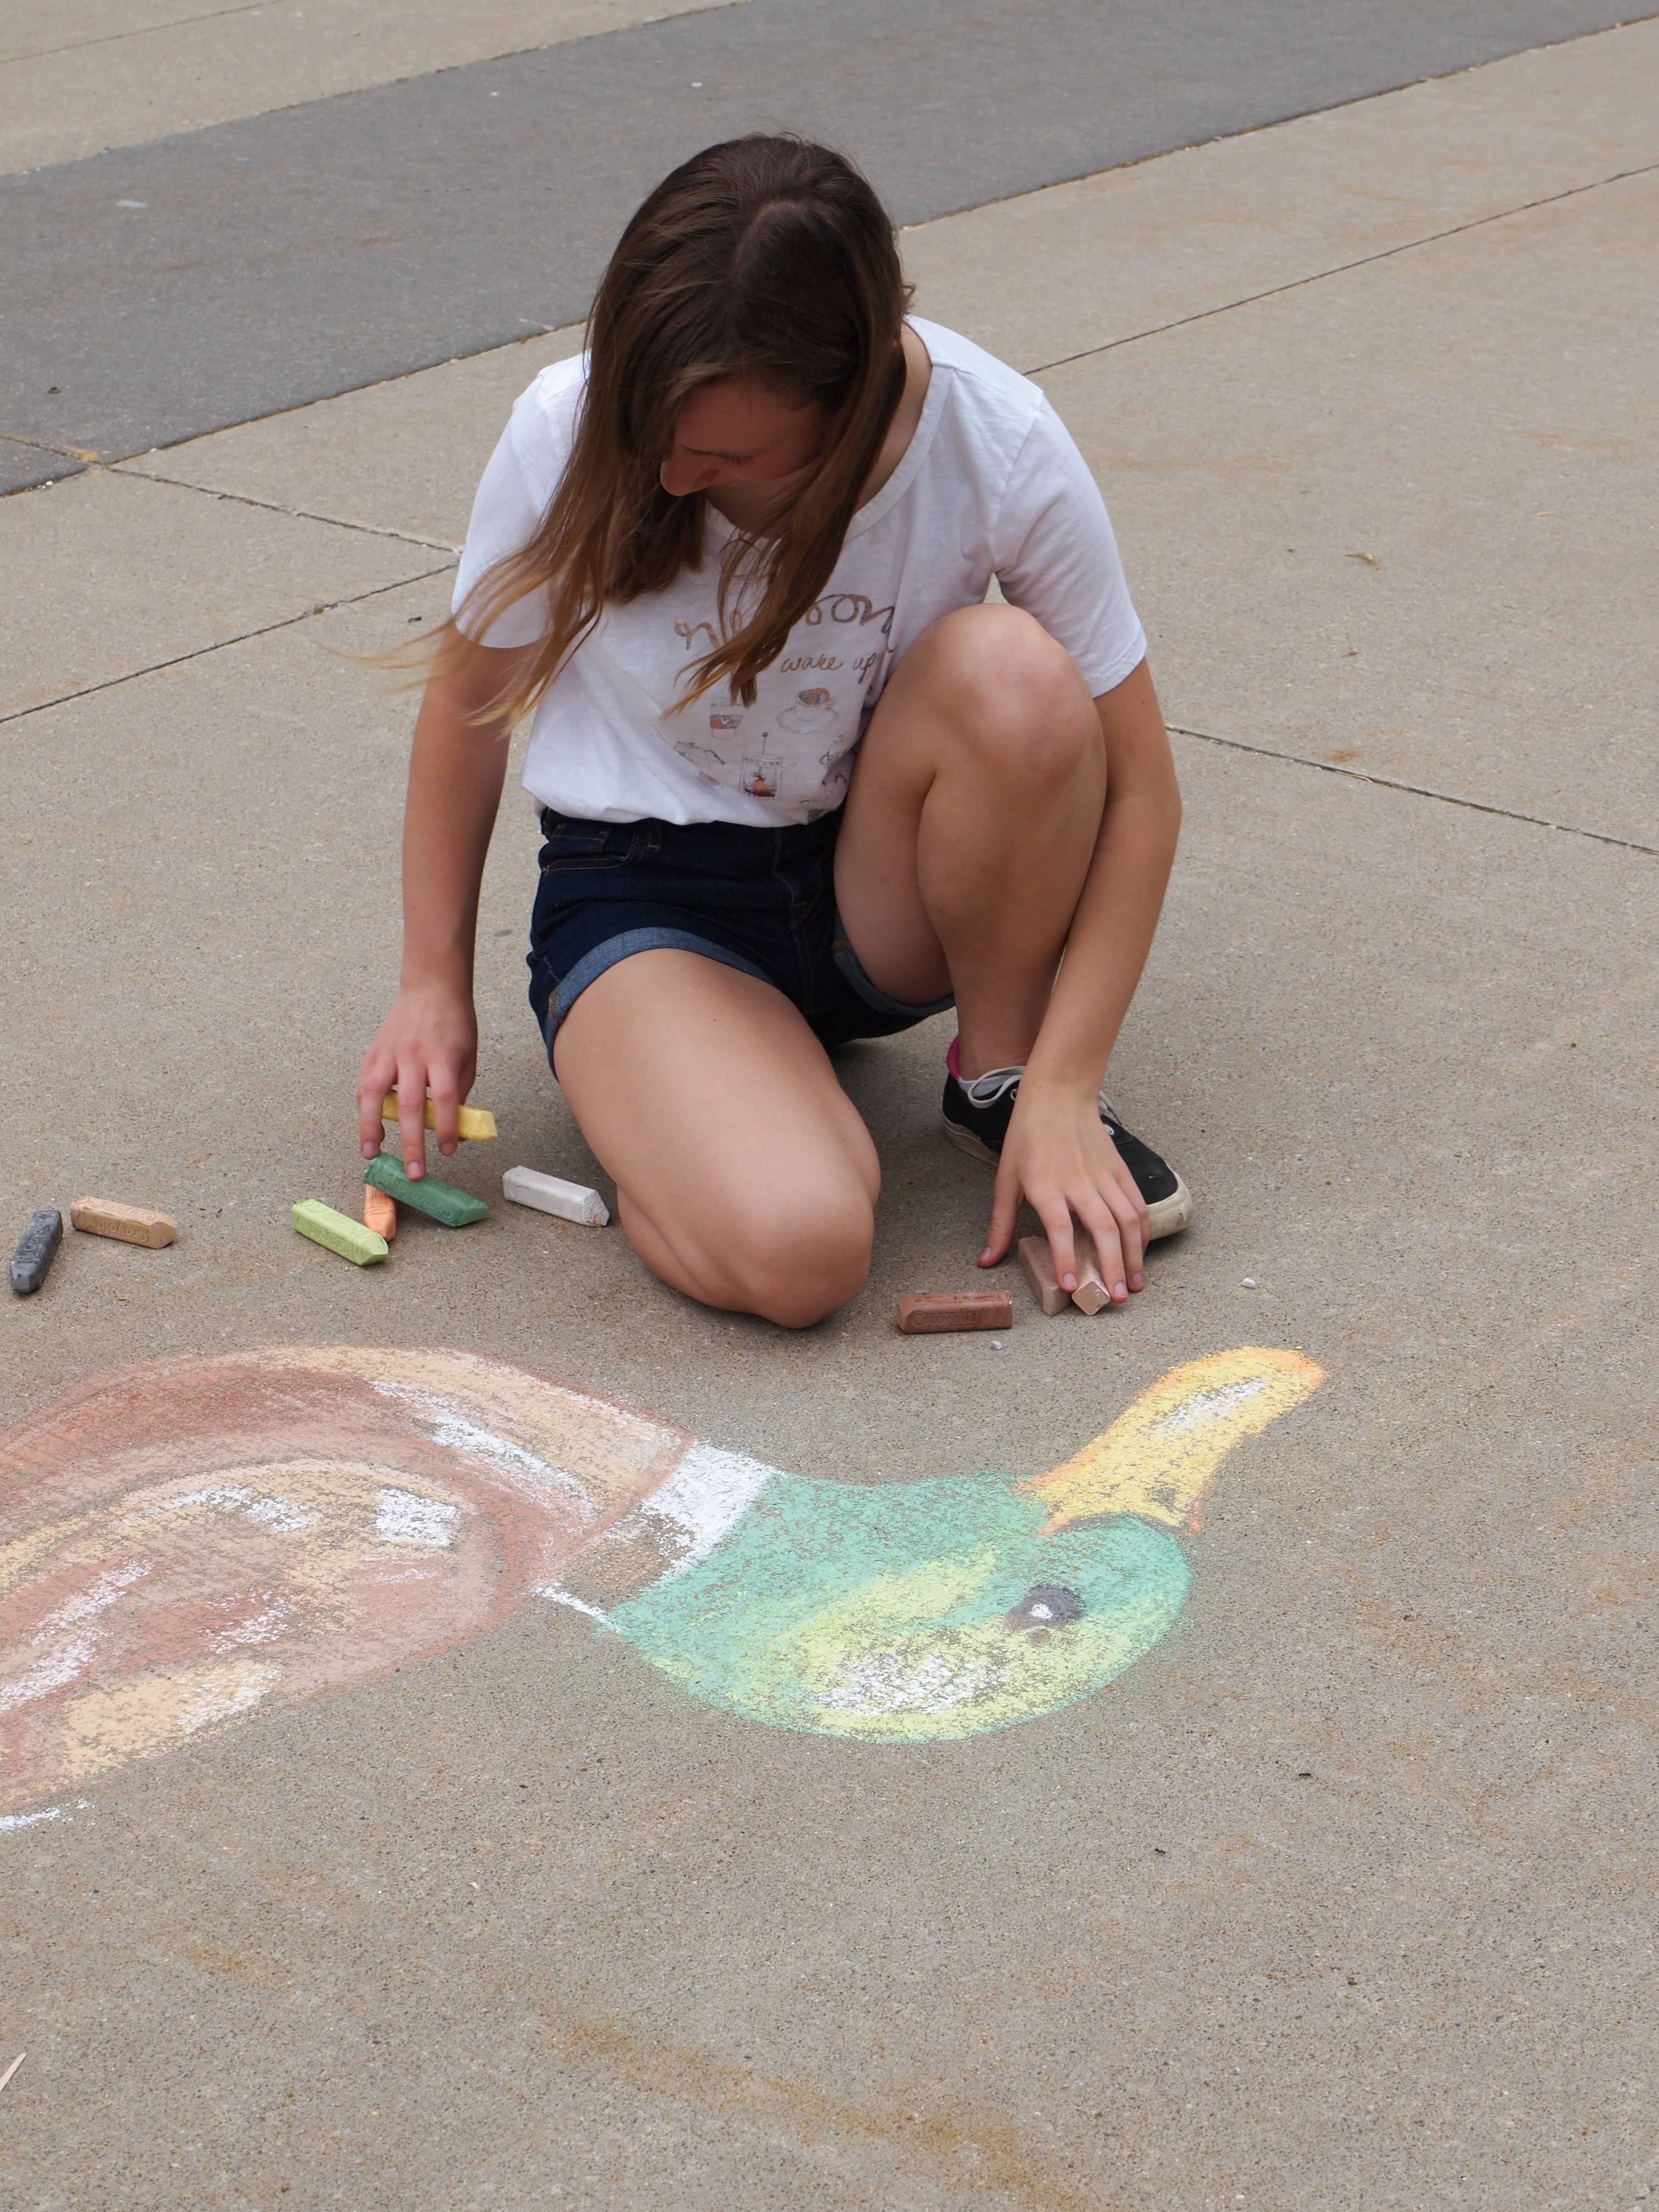 A young girl kneels on concrete alongside a chalk drawing of a duck; pieces of chalk sit on the ground close at hand